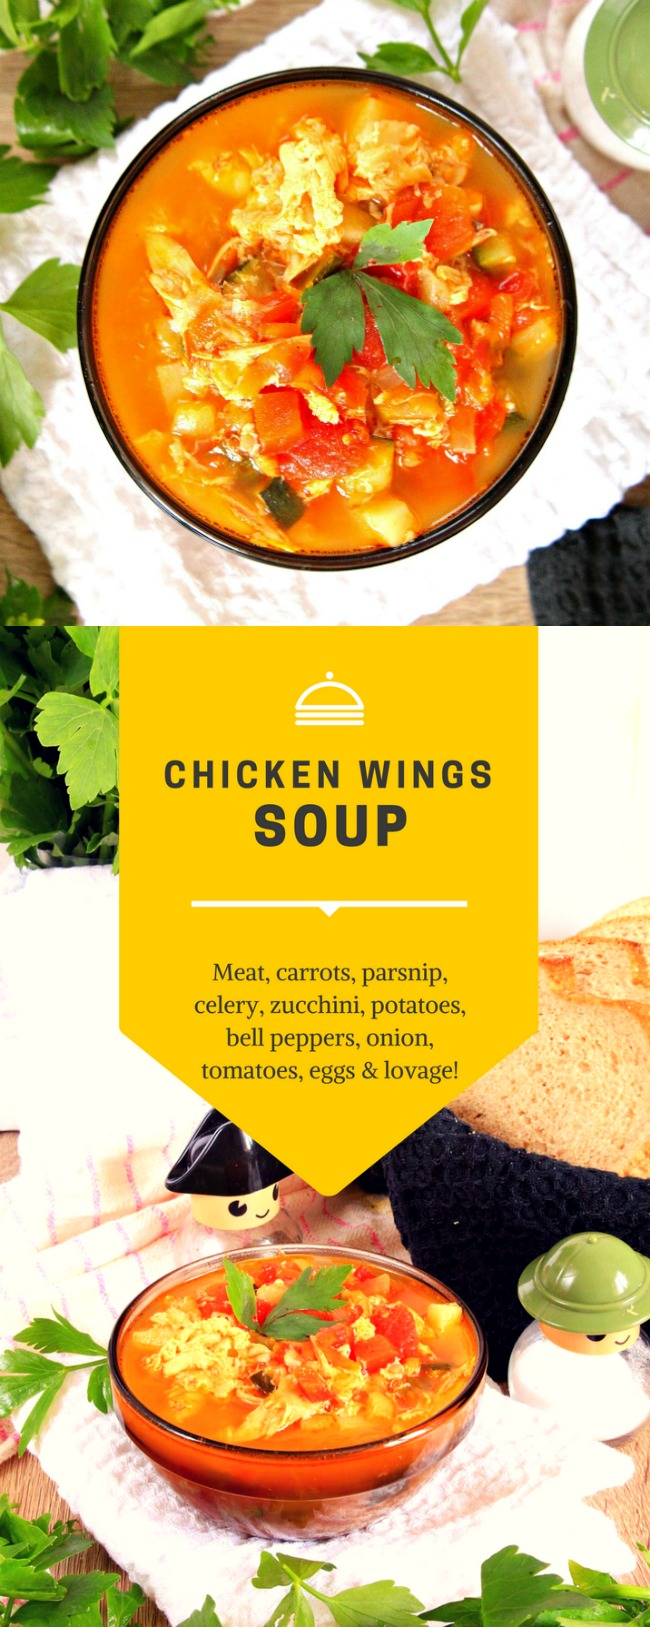 Chicken wings soup